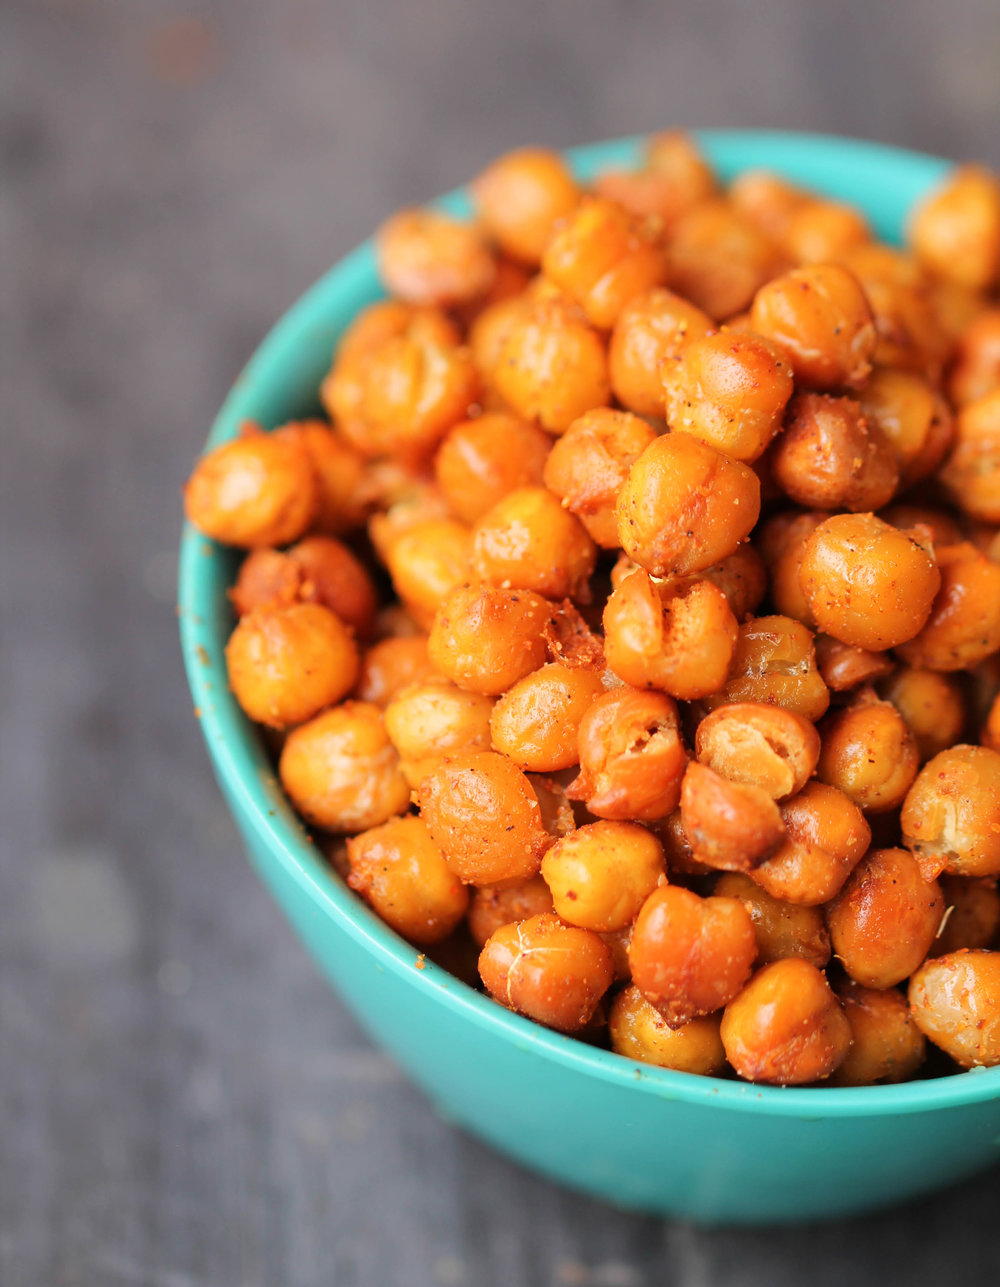 Tandoori Roasted Chickpeas make a crispy, delicious snack in 30 minutes! They are vegan, gluten-free, and very flexible with seasonings.